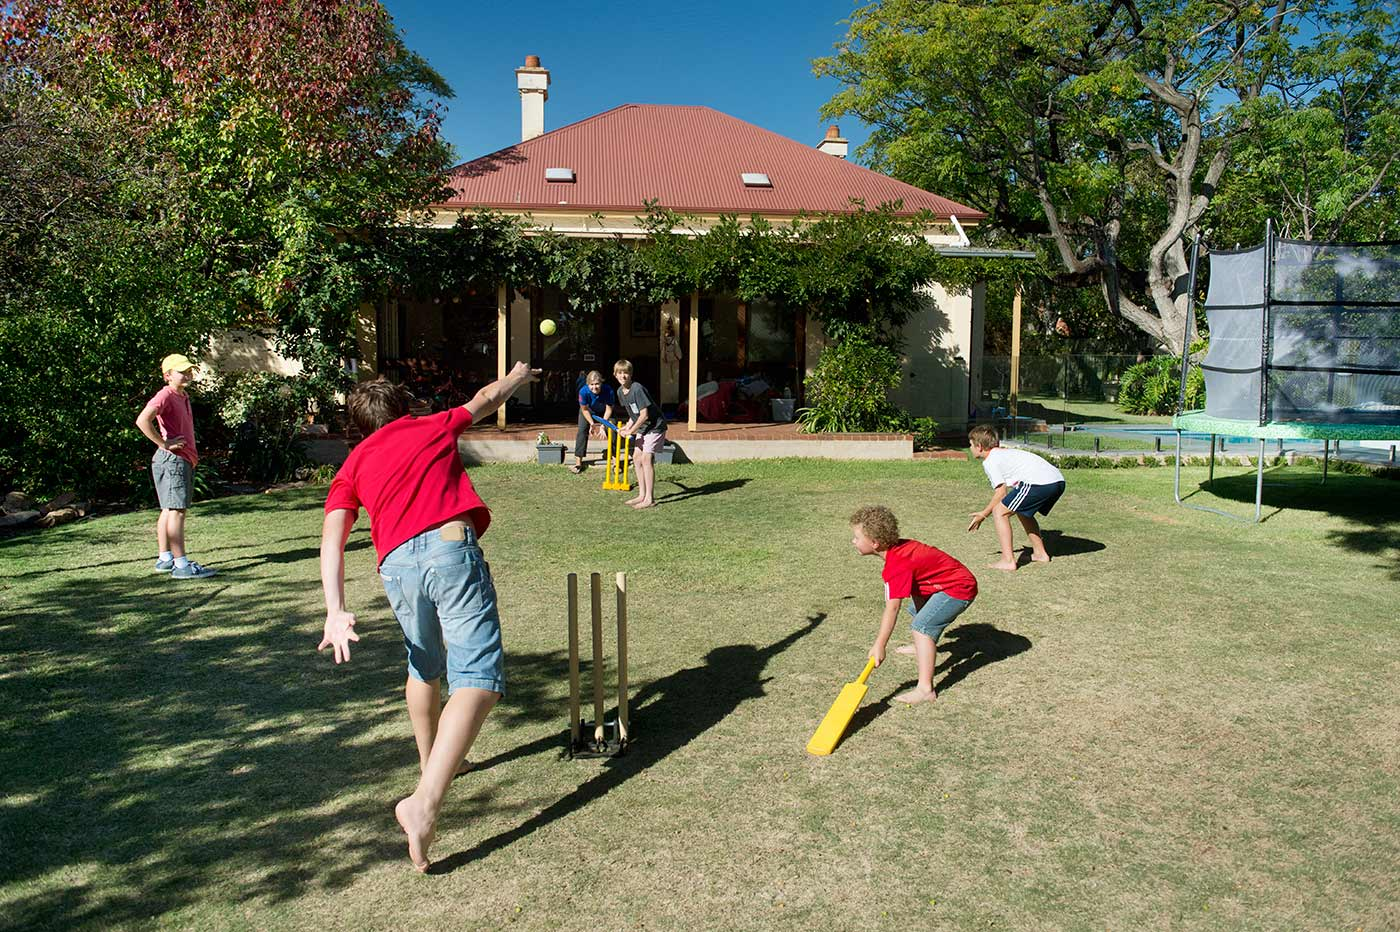 Backyard cricket: making fast bowlers out of little girls since forever